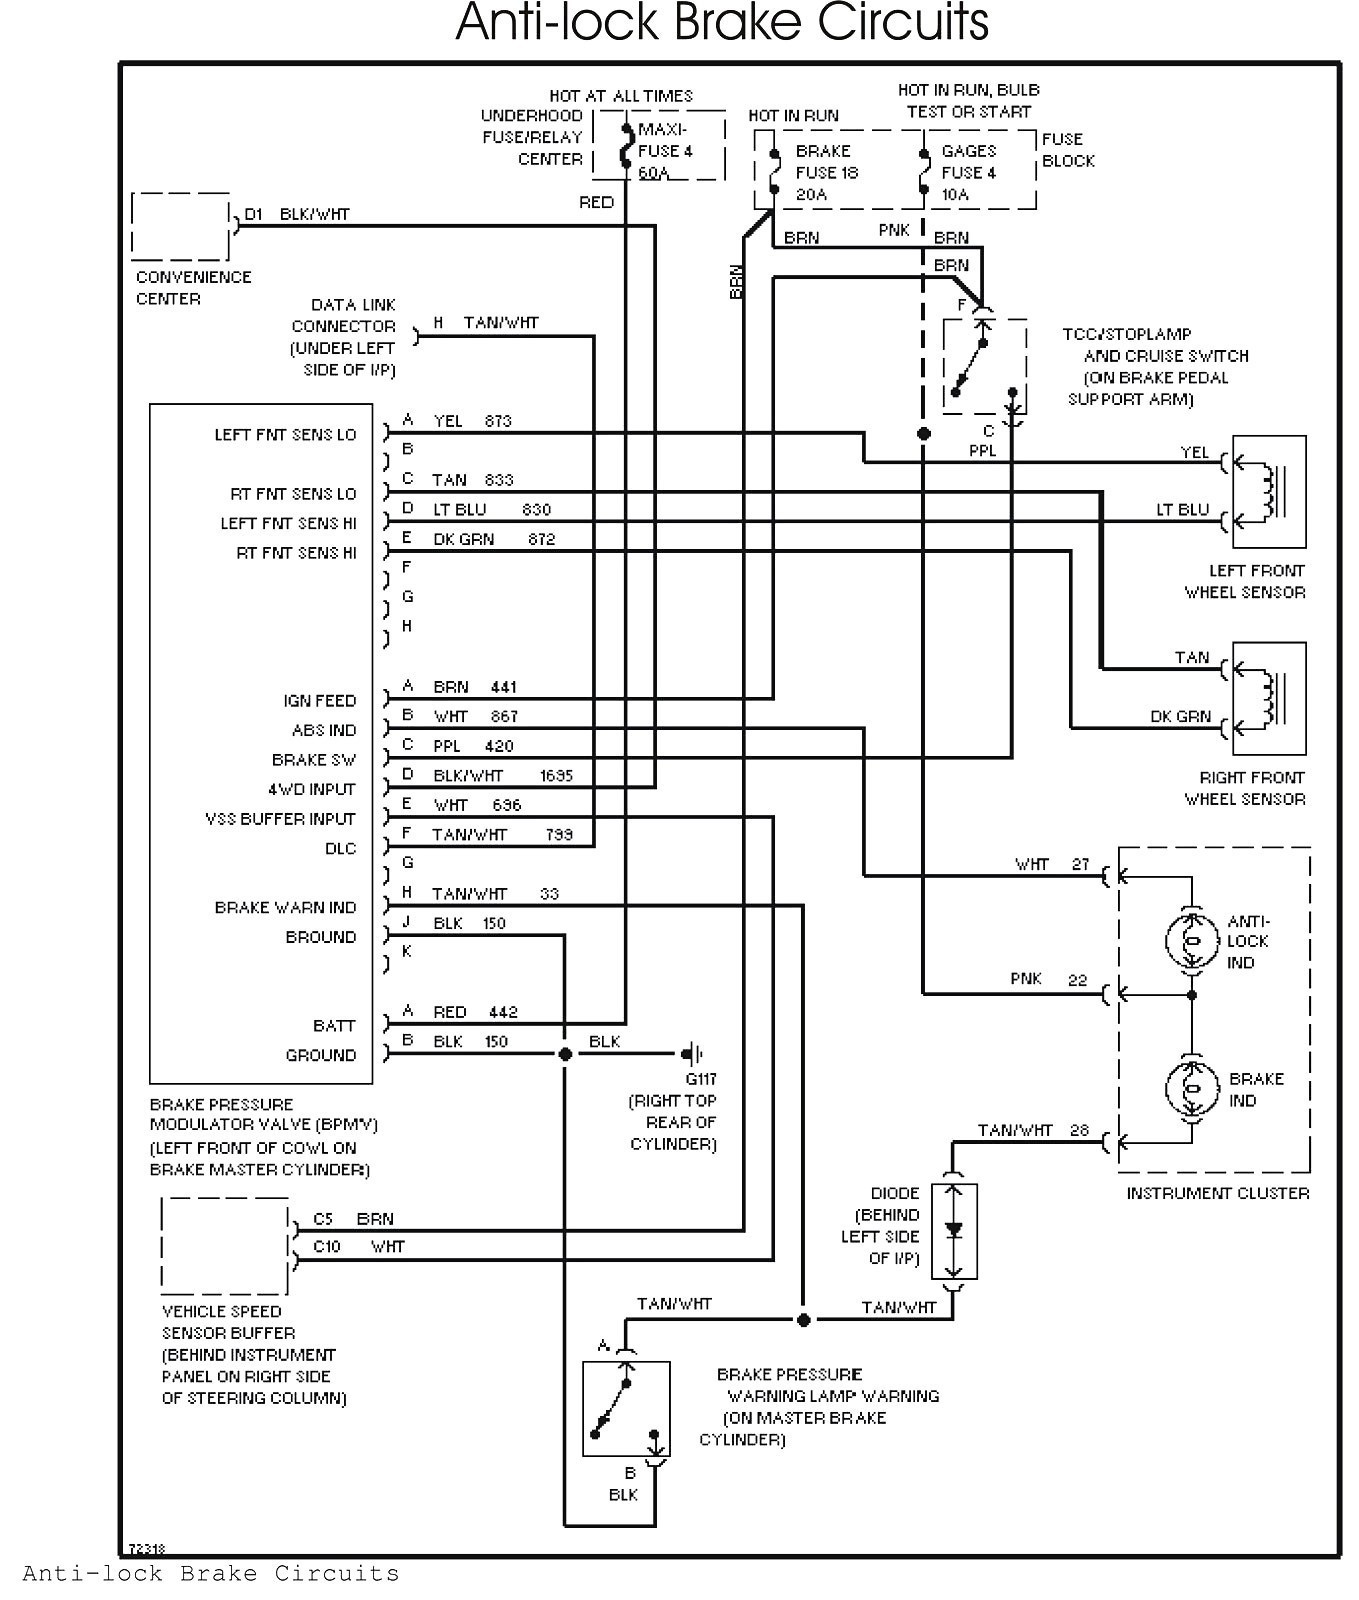 Tap Breakaway Kit Wiring Diagram Trailer Breakaway System Wiring Diagram with Of Tap Breakaway Kit Wiring Diagram Heatiator Boiler Bh60 User Manual